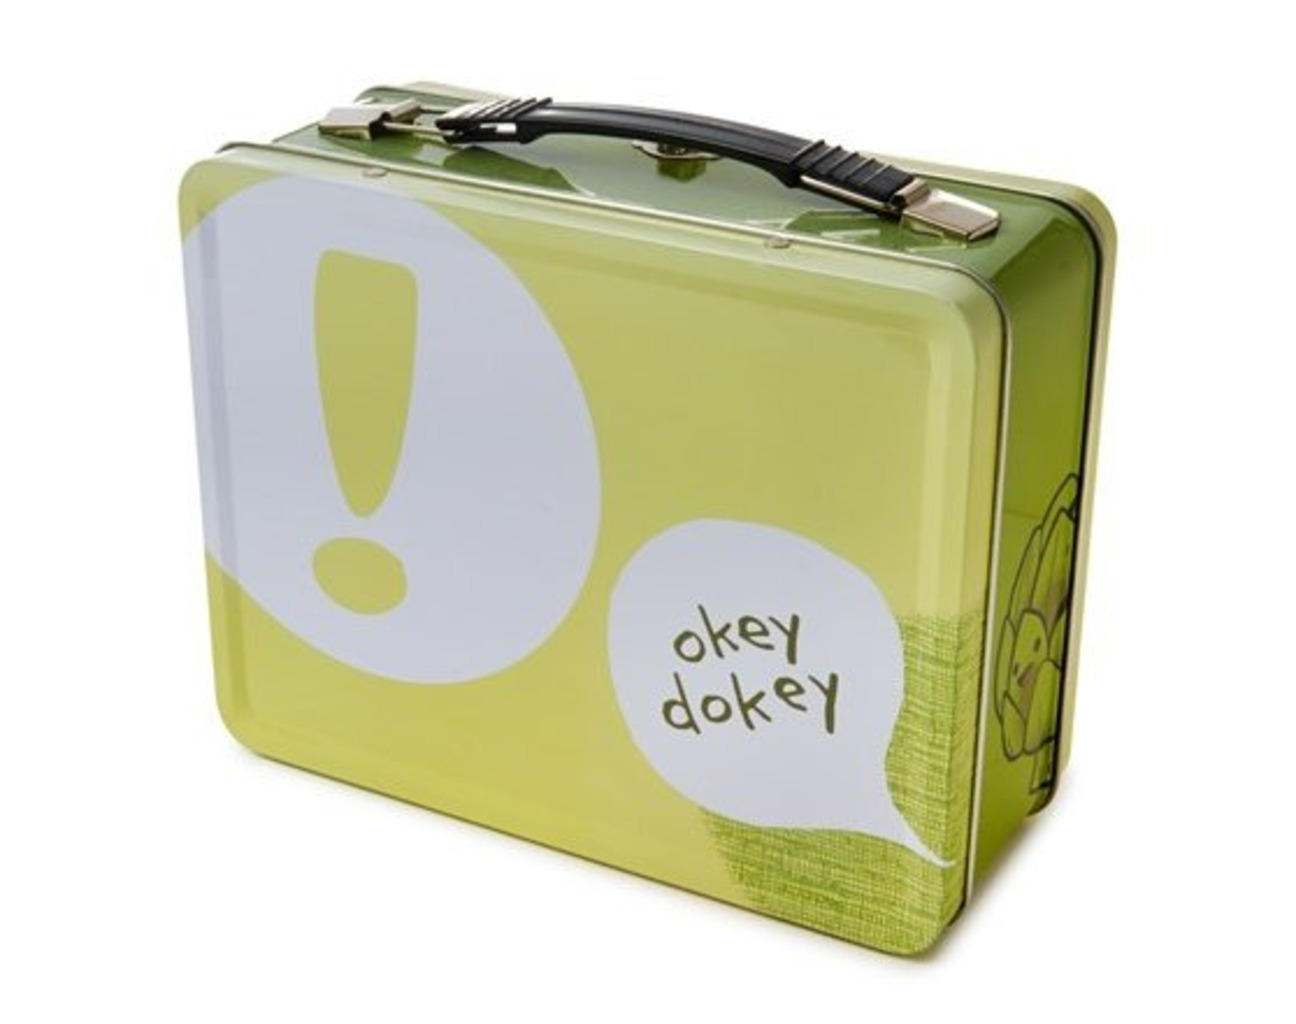 Woot!: Artichokey Lunch Box